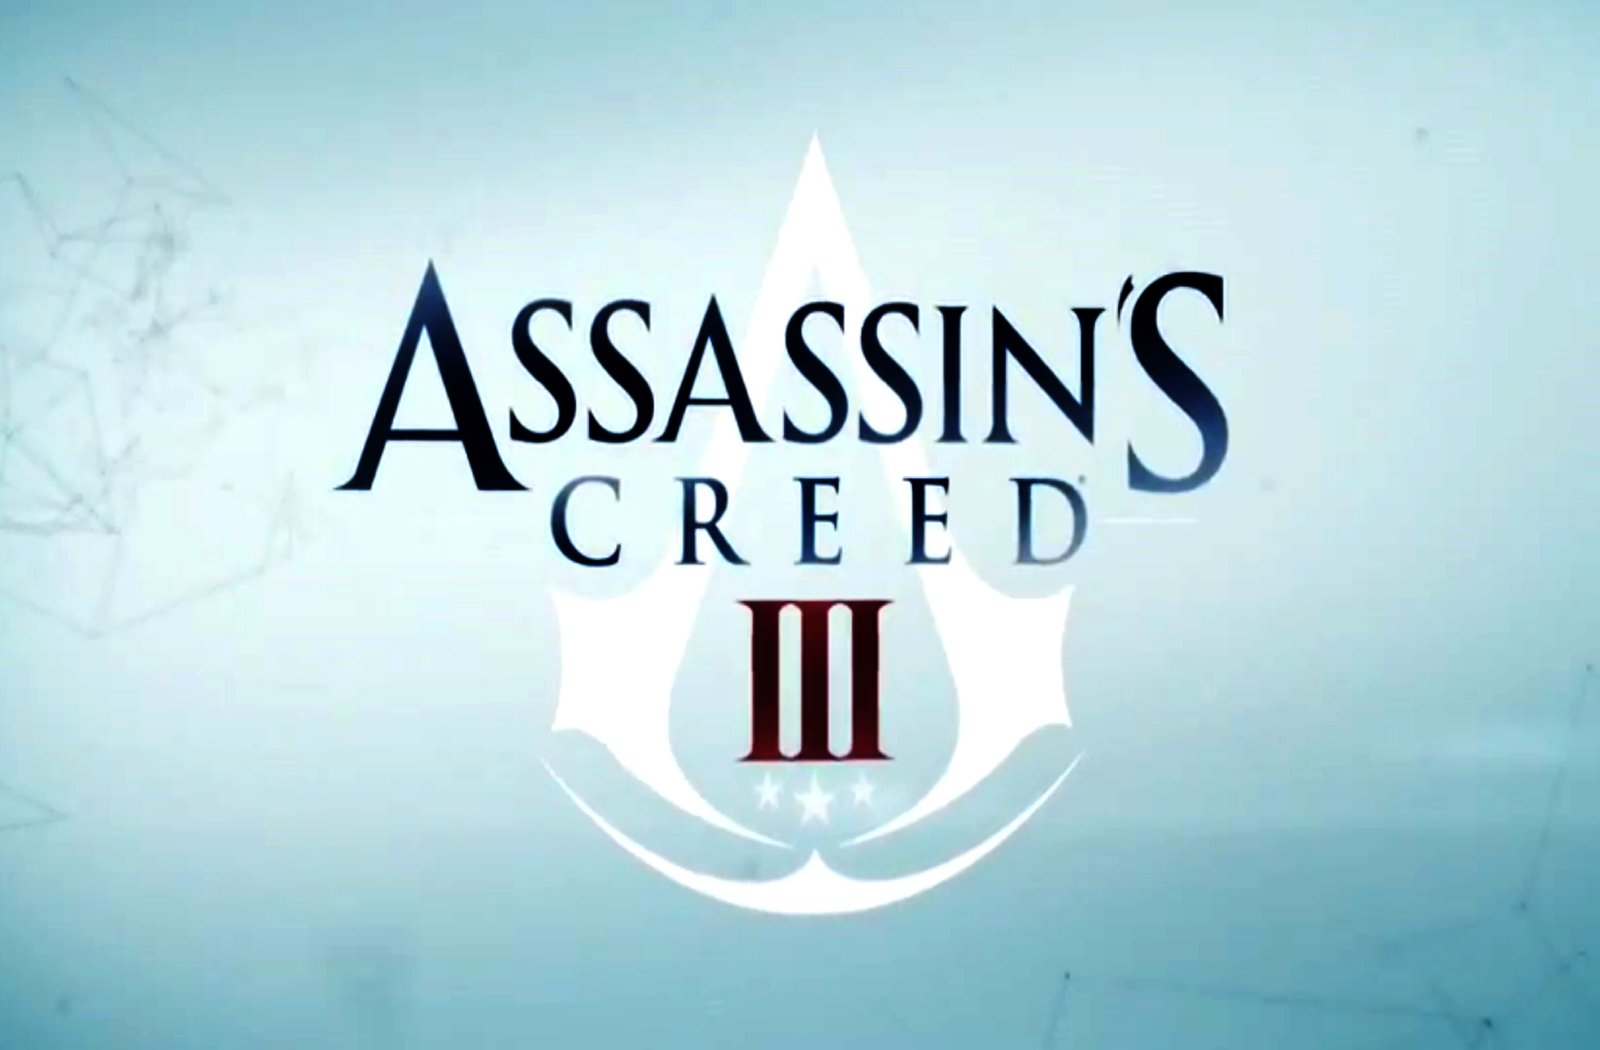 Assassins Creed III New Game HD Wallpapers Download Wallpapers 1600x1050